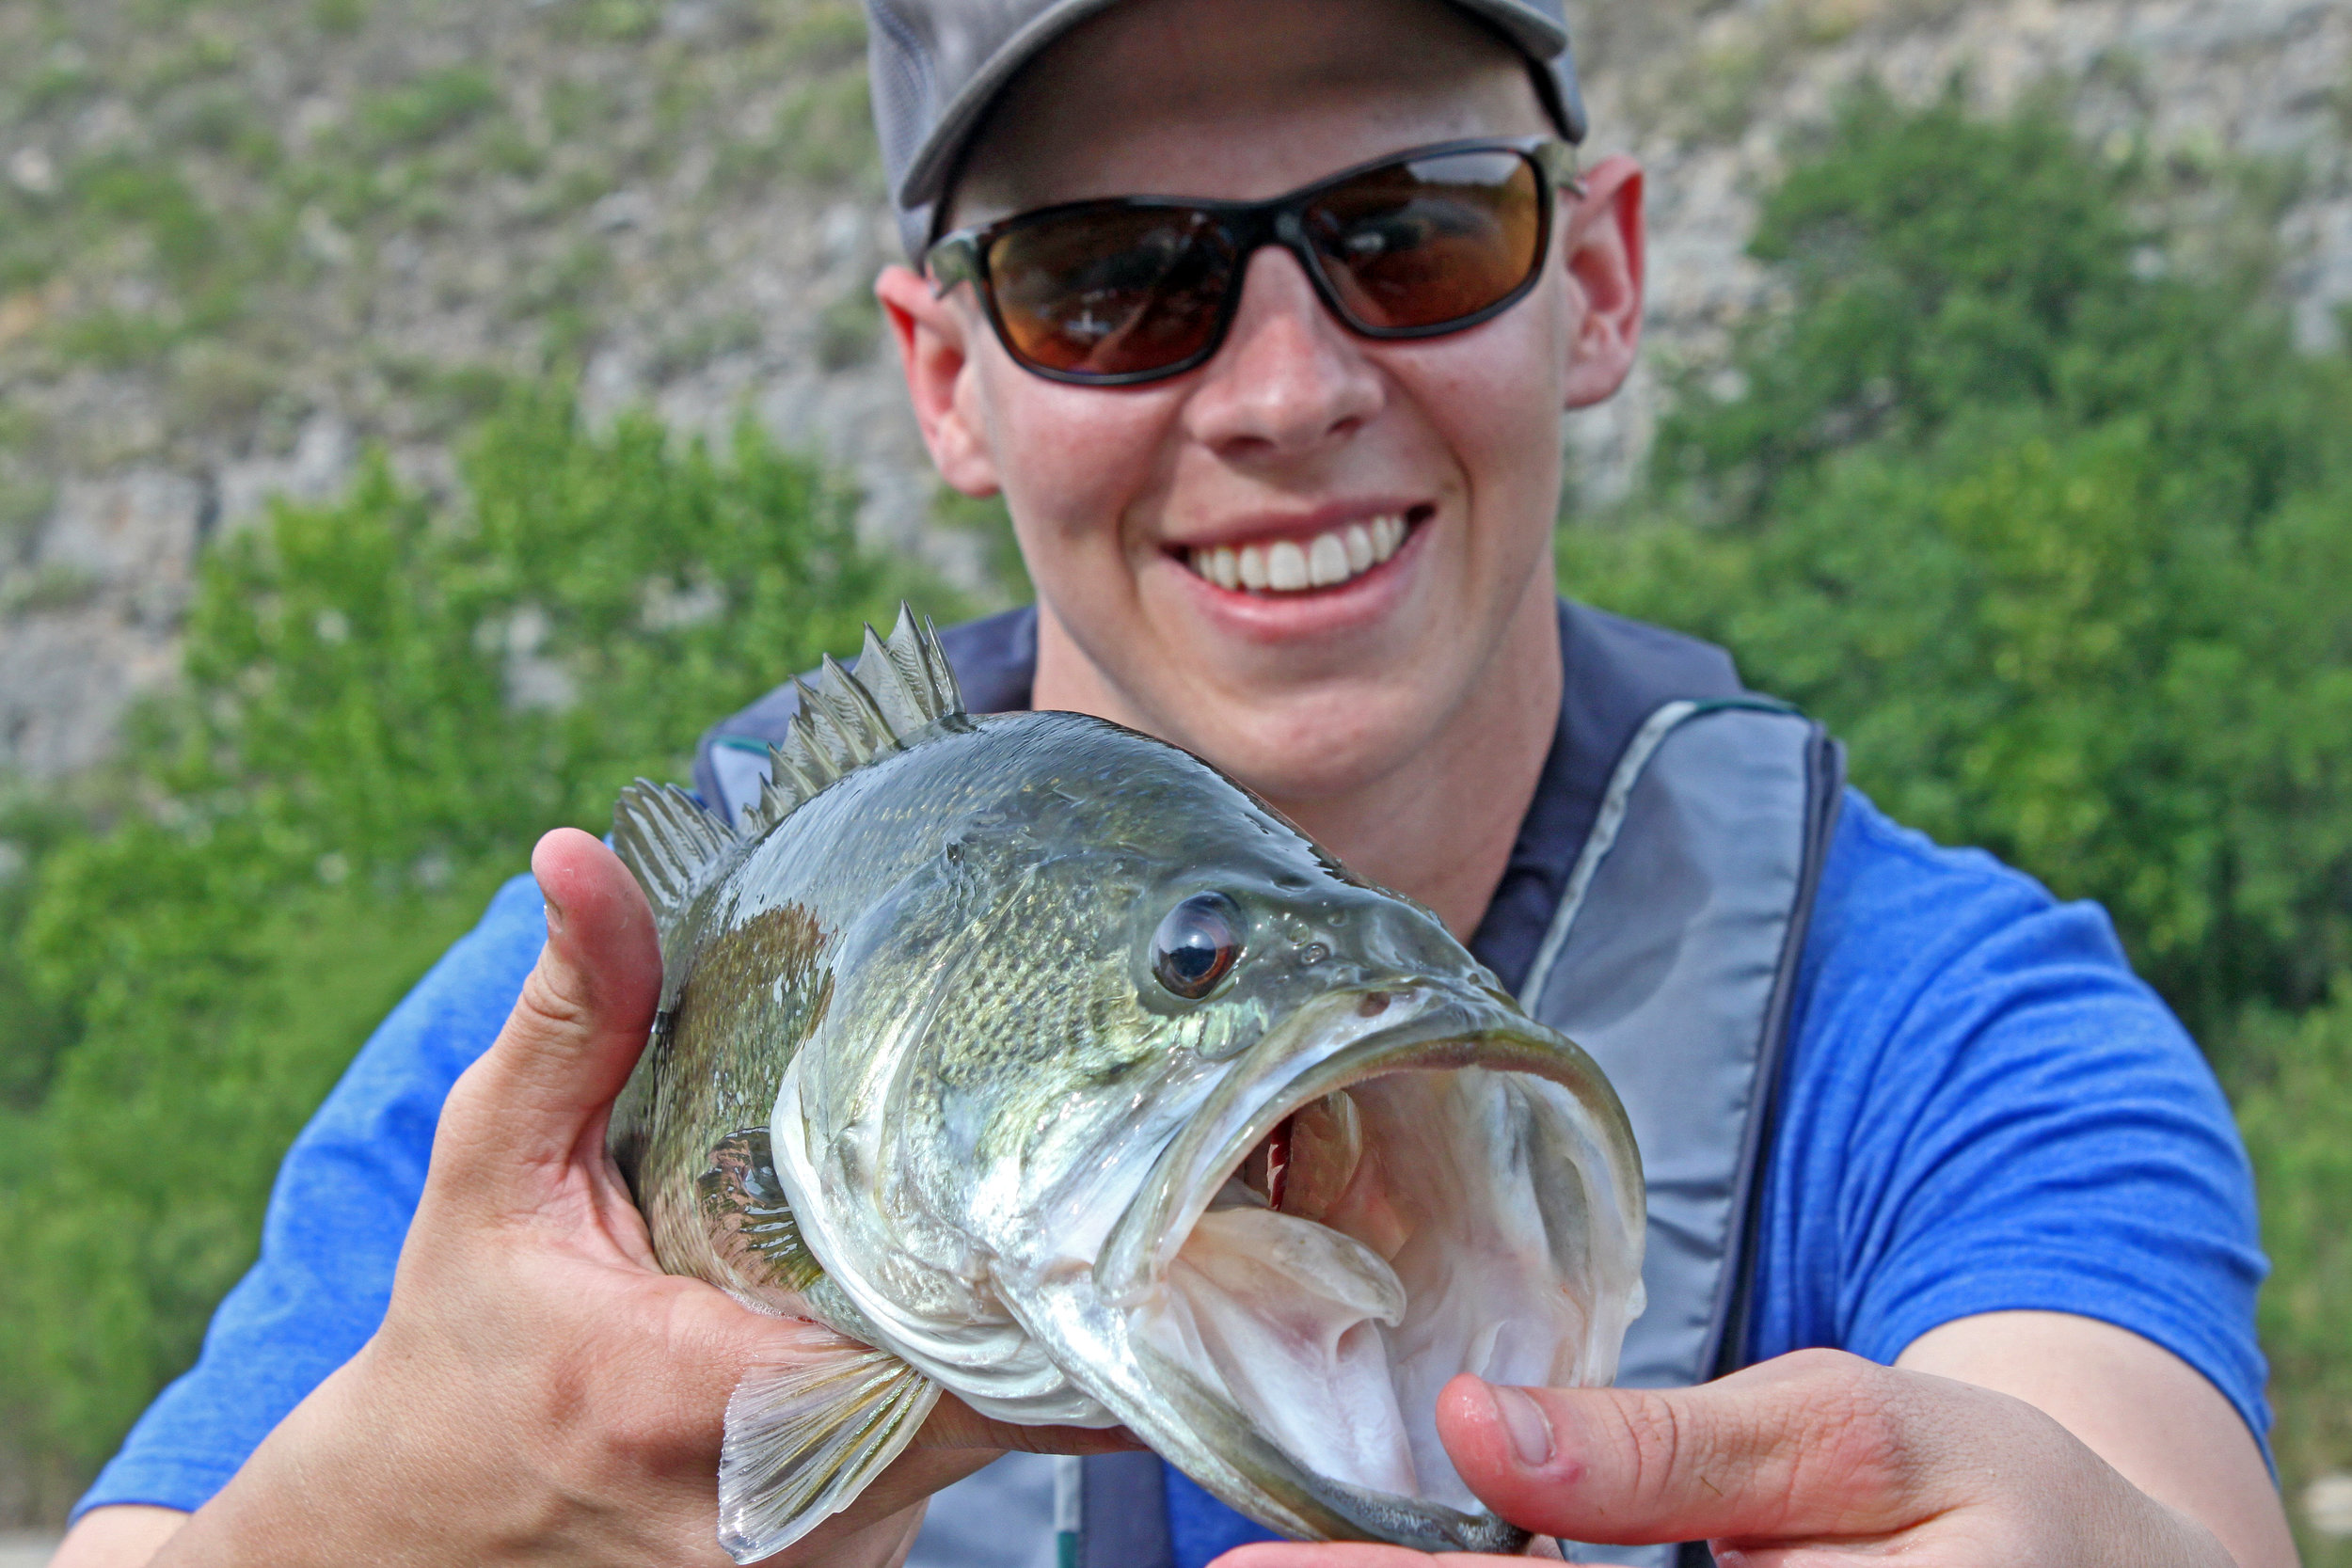 When you are fishing for larger bass, a baitcasting setup is often the preferred setup.